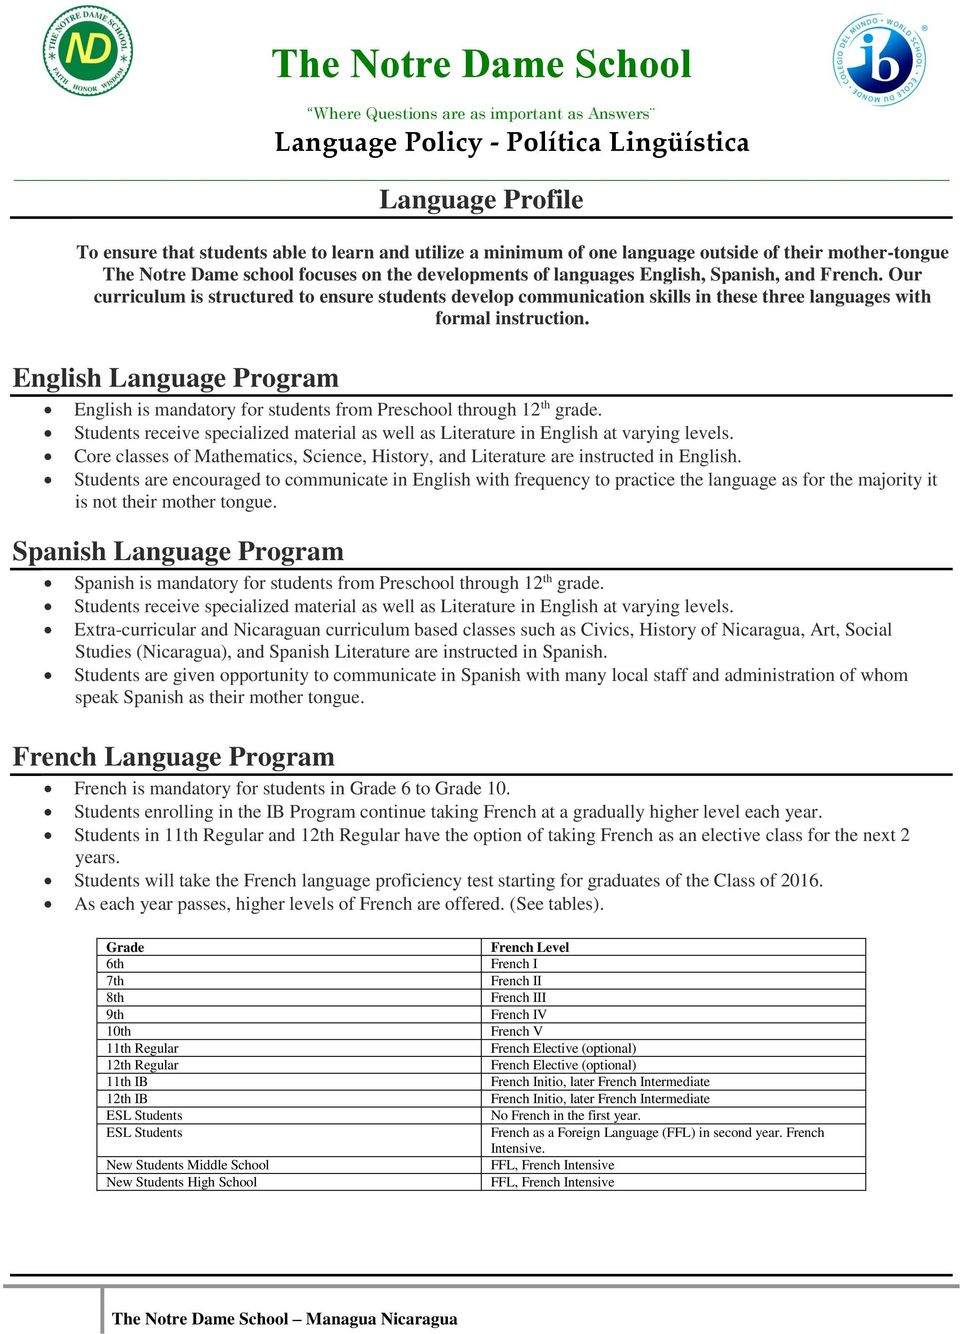 English Language Program English is mandatory for students from Preschool through 12 th grade. Students receive specialized material as well as Literature in English at varying levels.